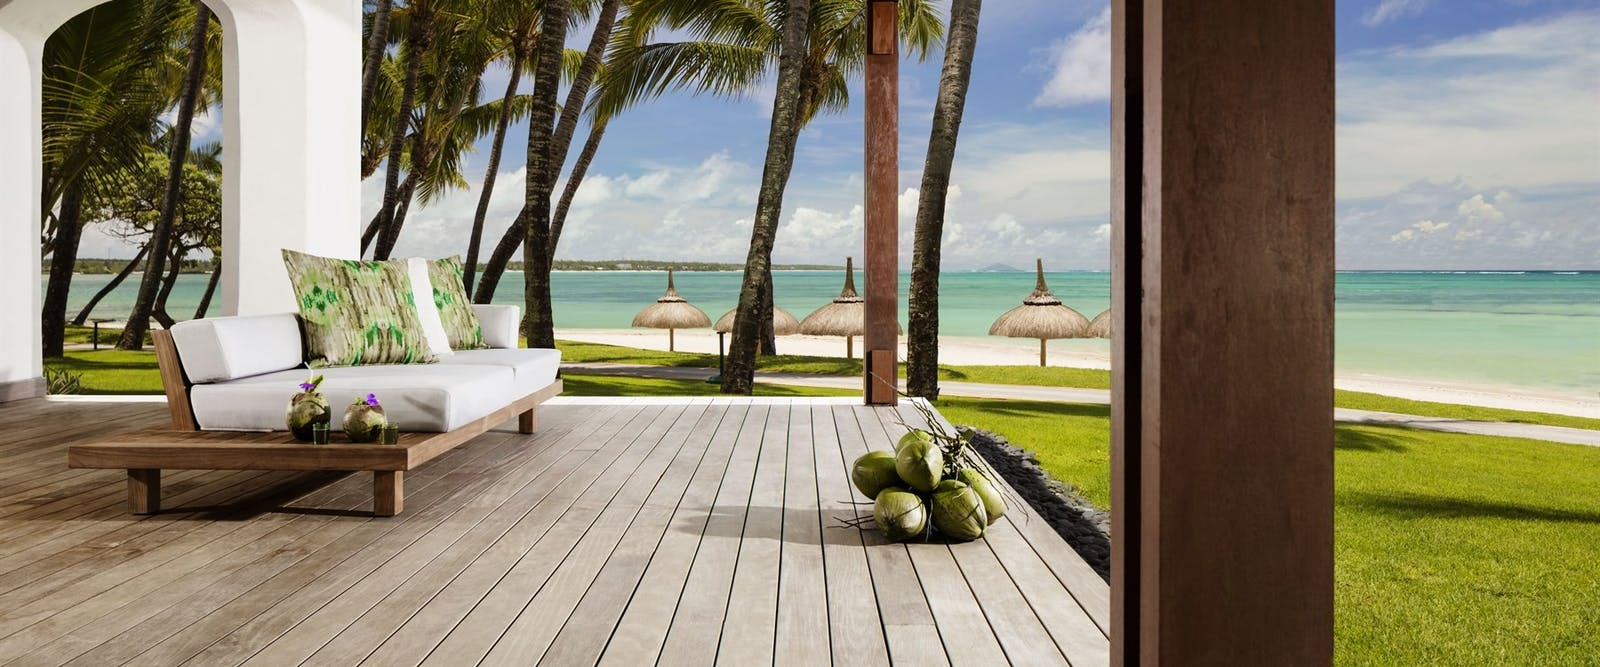 Ocean Suite Terrace at One&Only Le Saint Geran, Mauritius